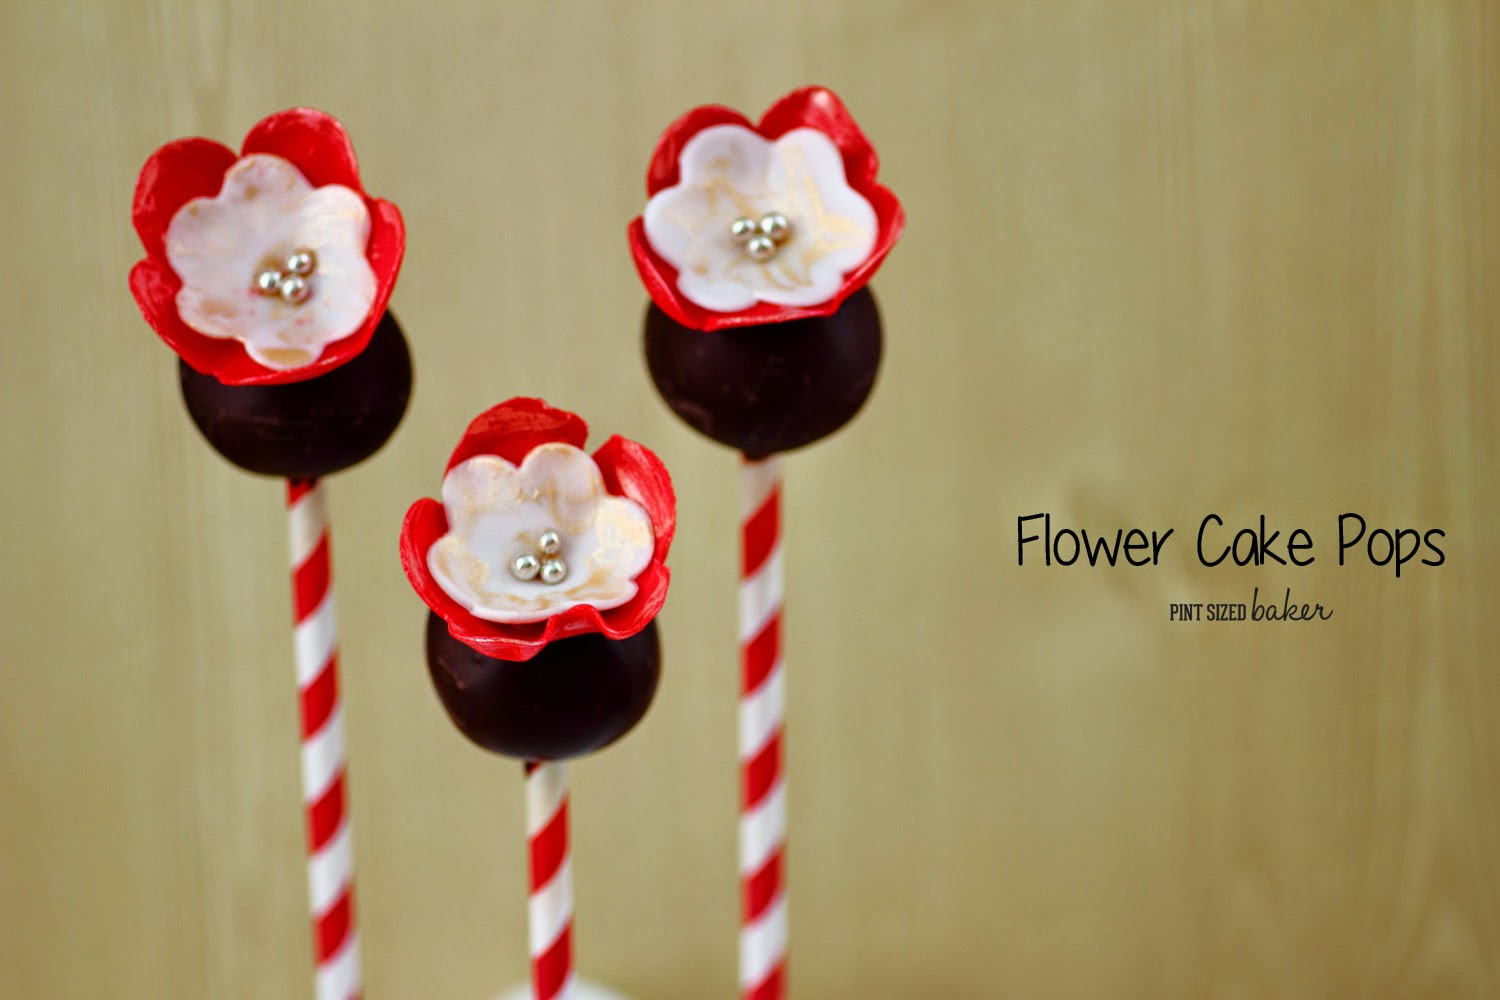 I want a bouquet of these edible fondant flower cake pops! They are so pretty!